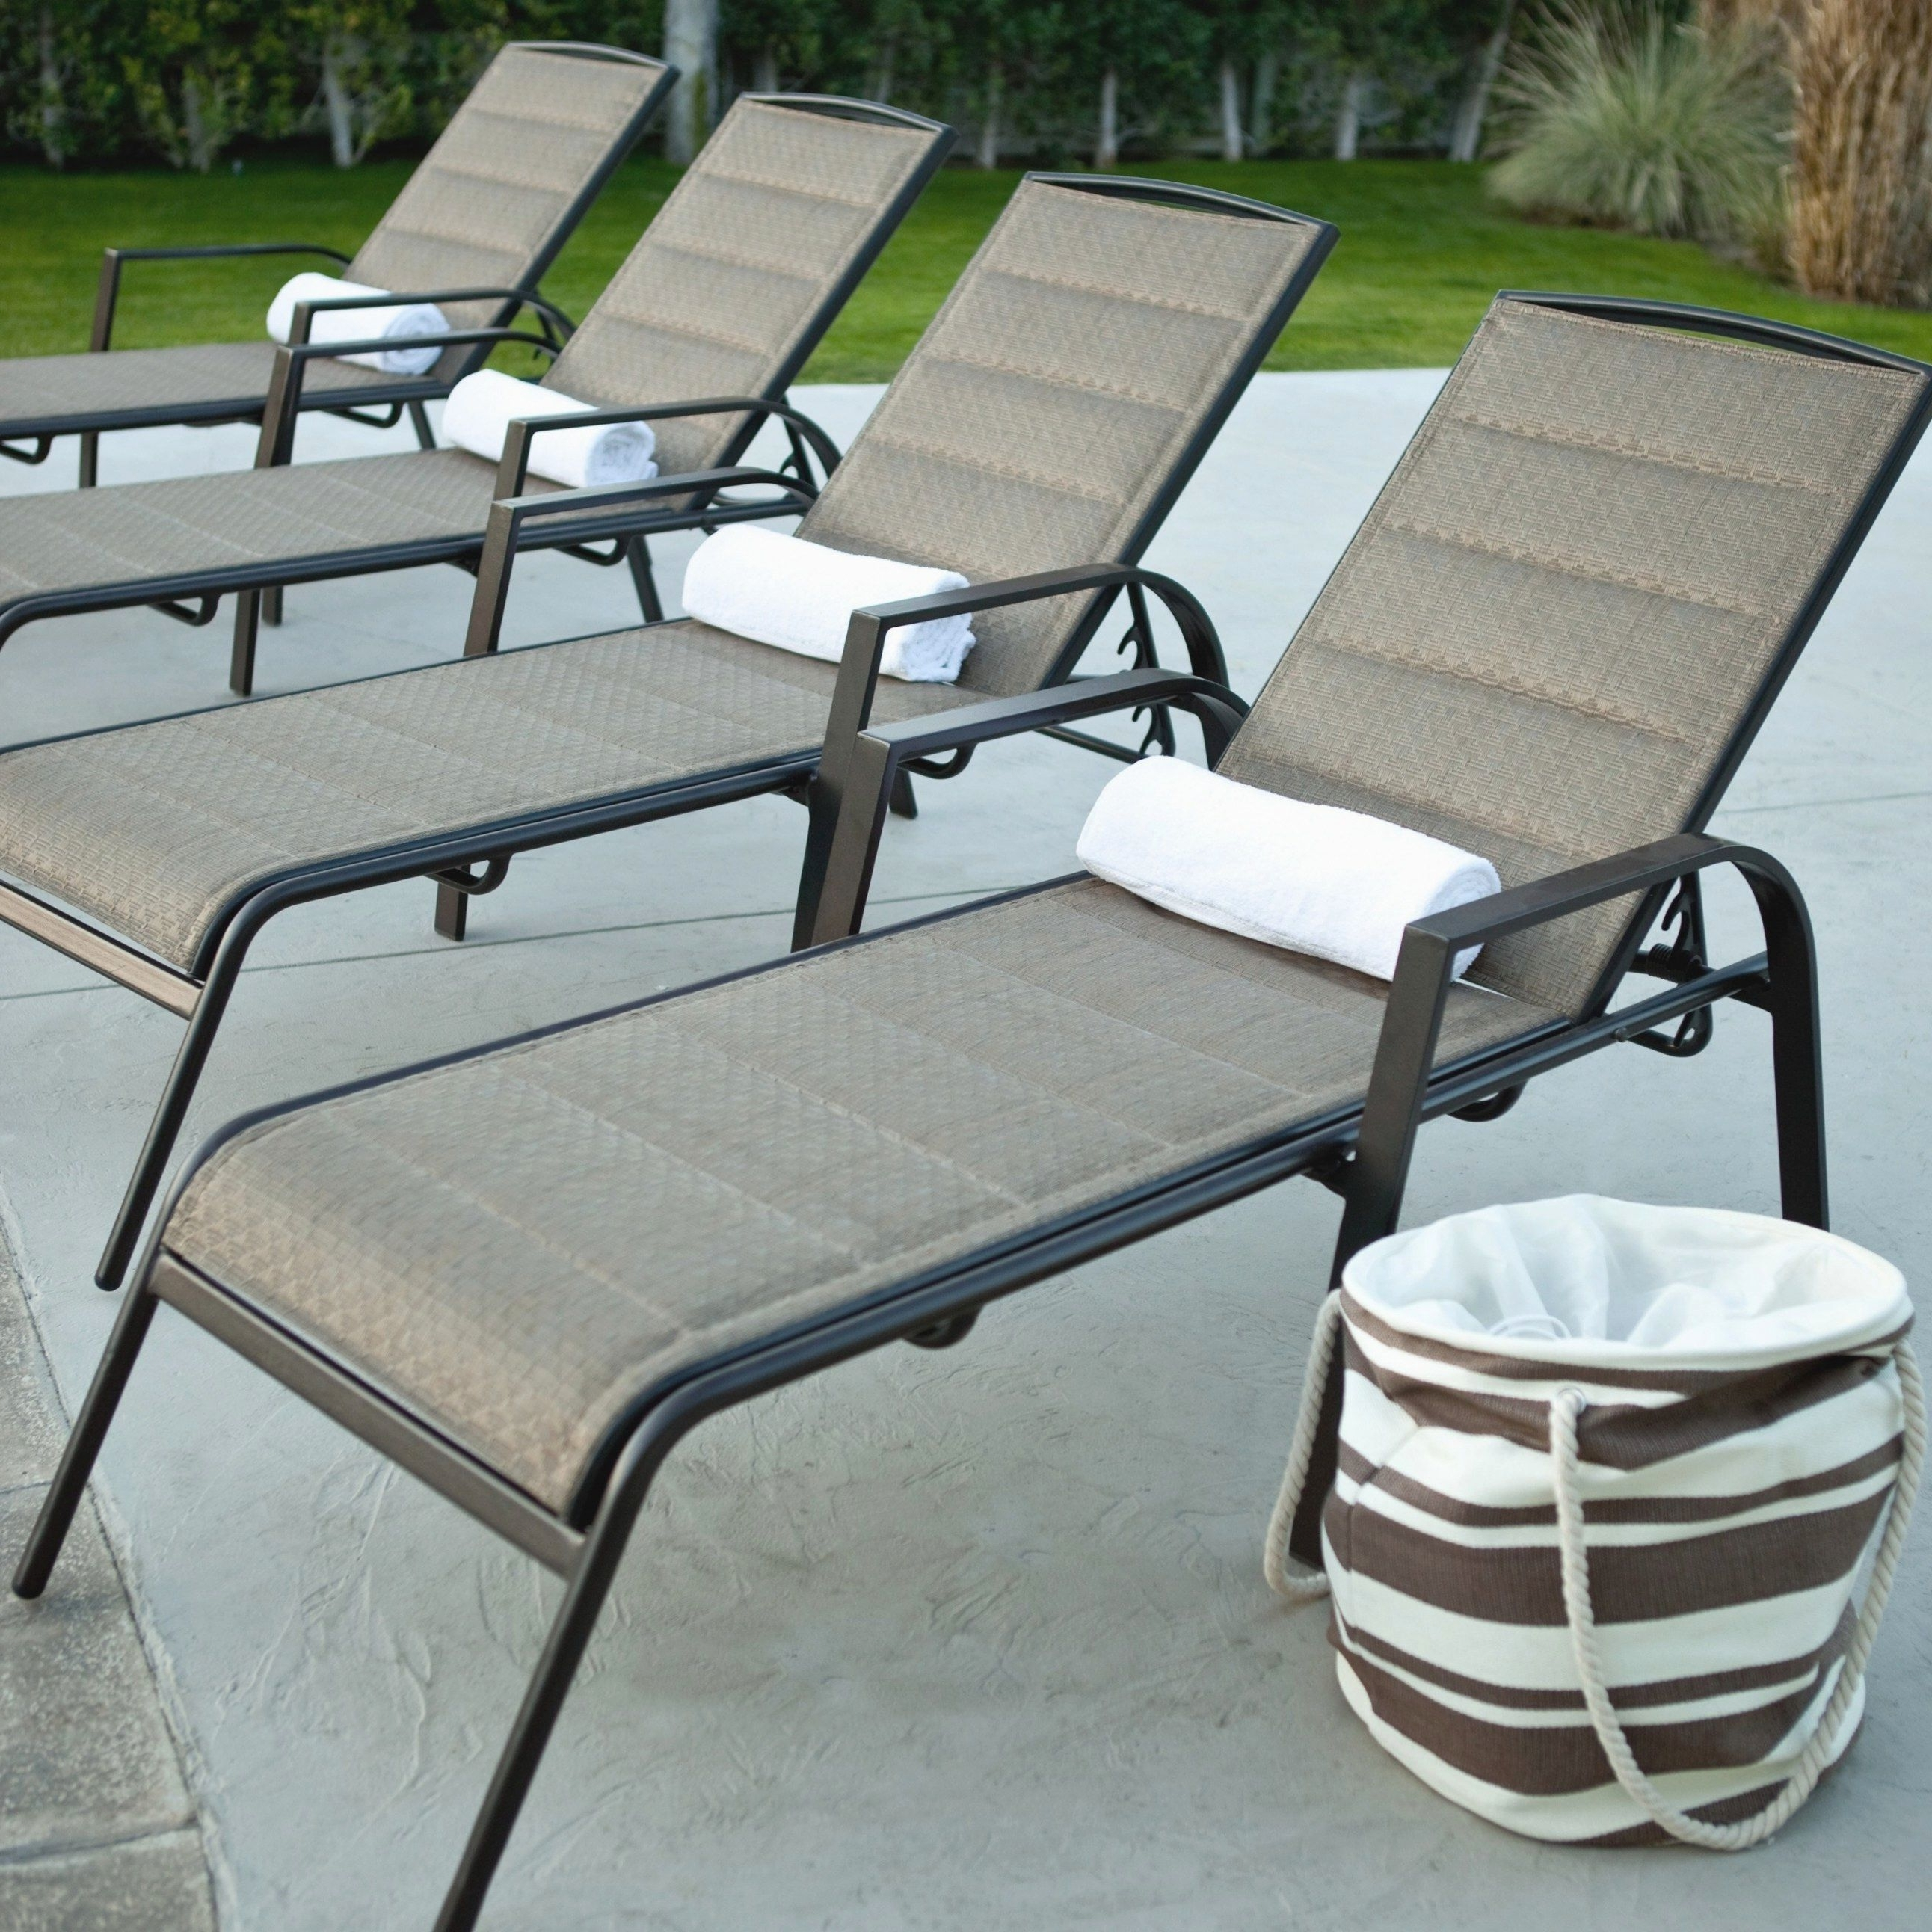 Etonnant Outdoor Chaise Lounge Chairs Under 100 Modern Fresh Ideas Inside Current Outdoor  Chaise Lounge Chairs Under